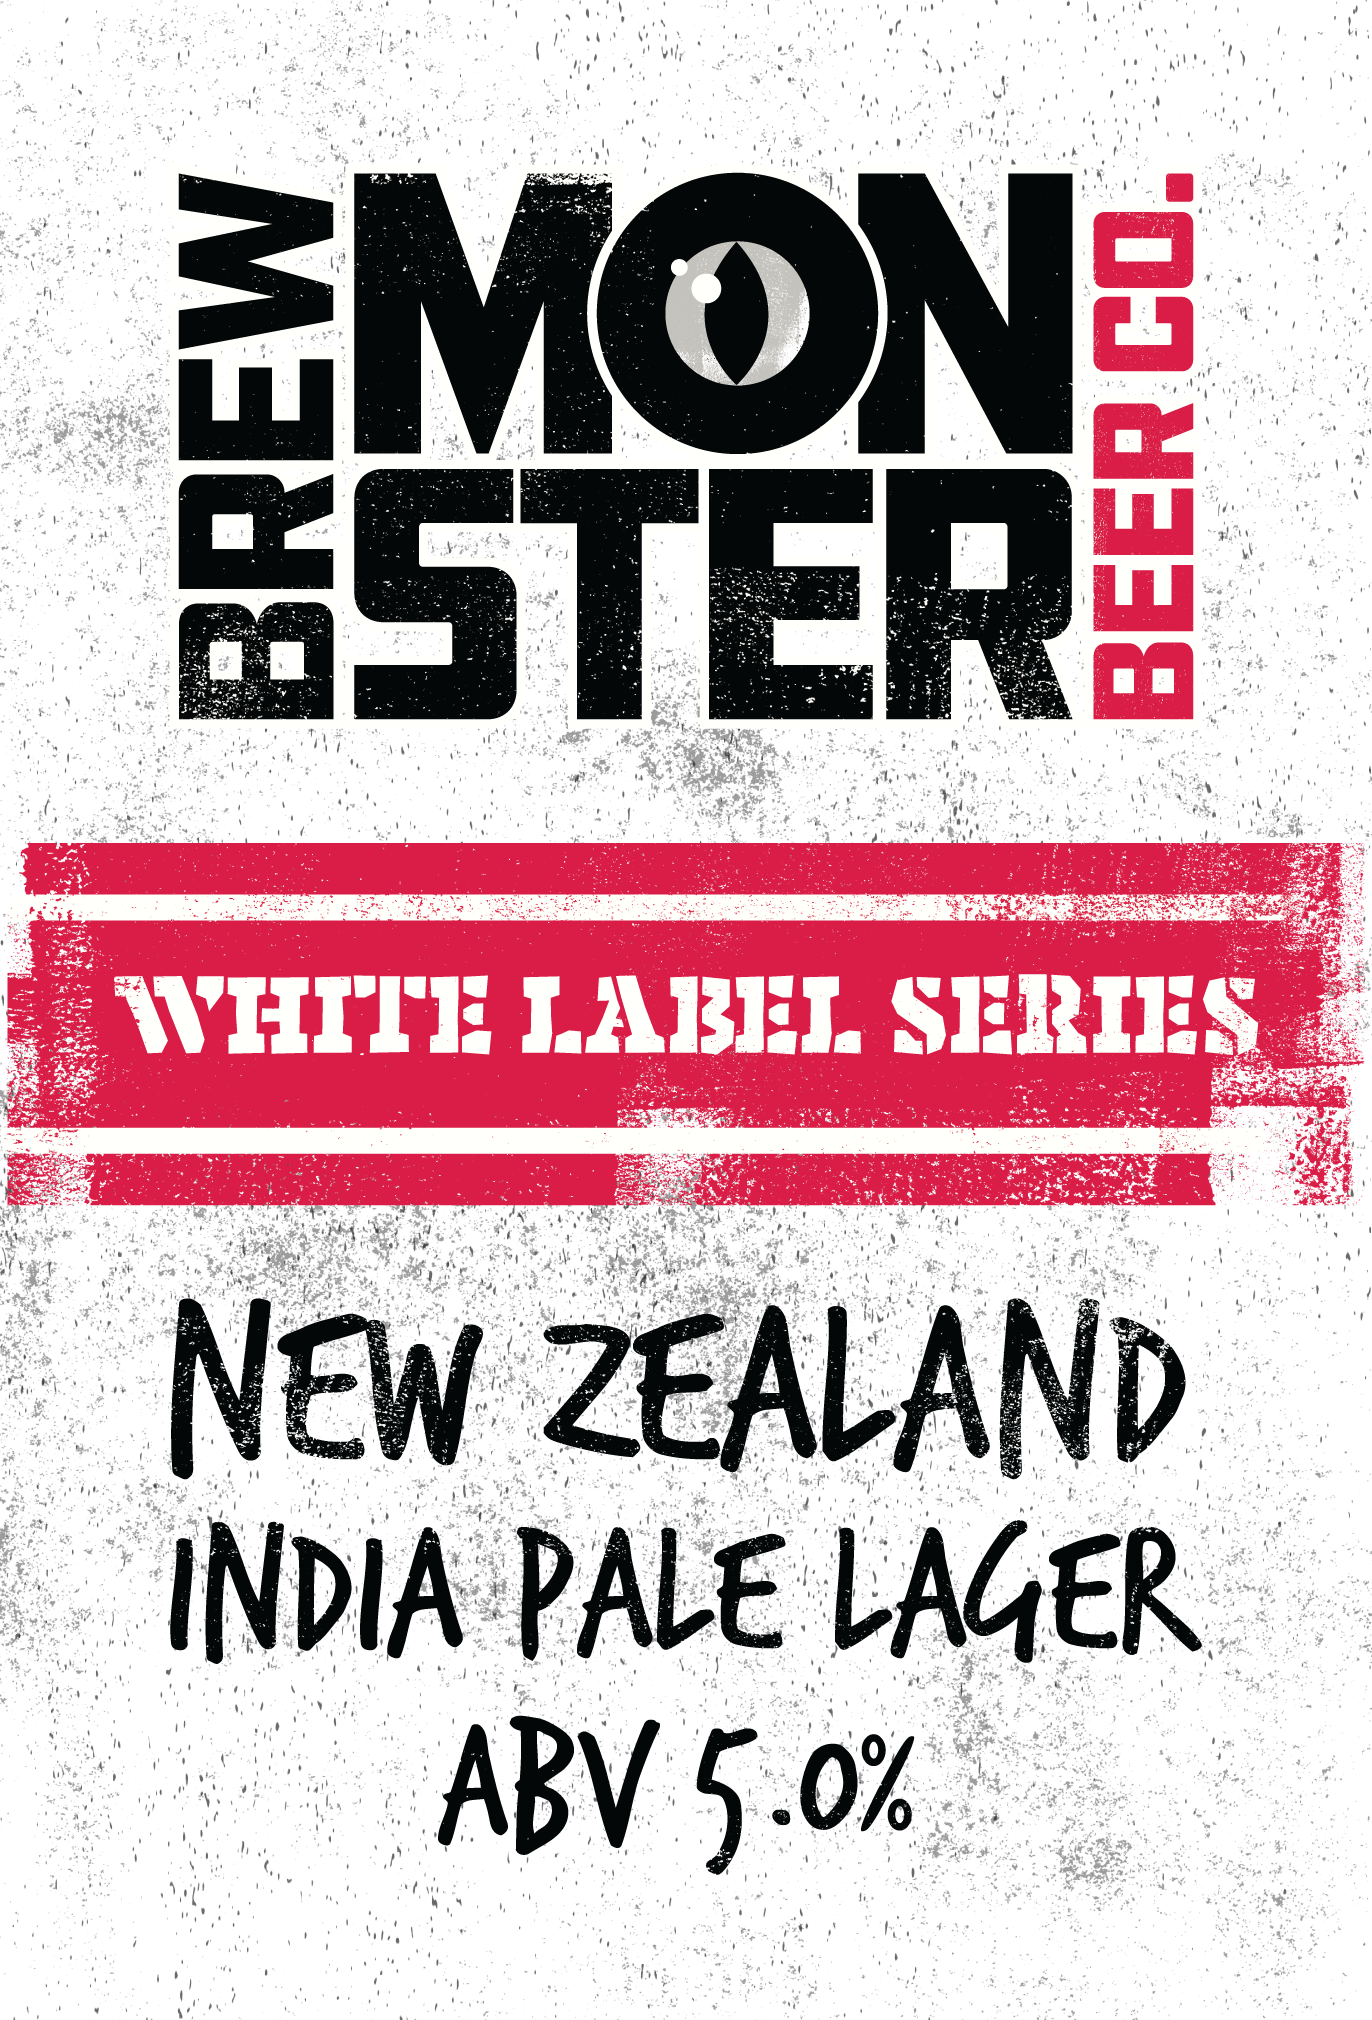 New Zealand India Pale Lager 5.%